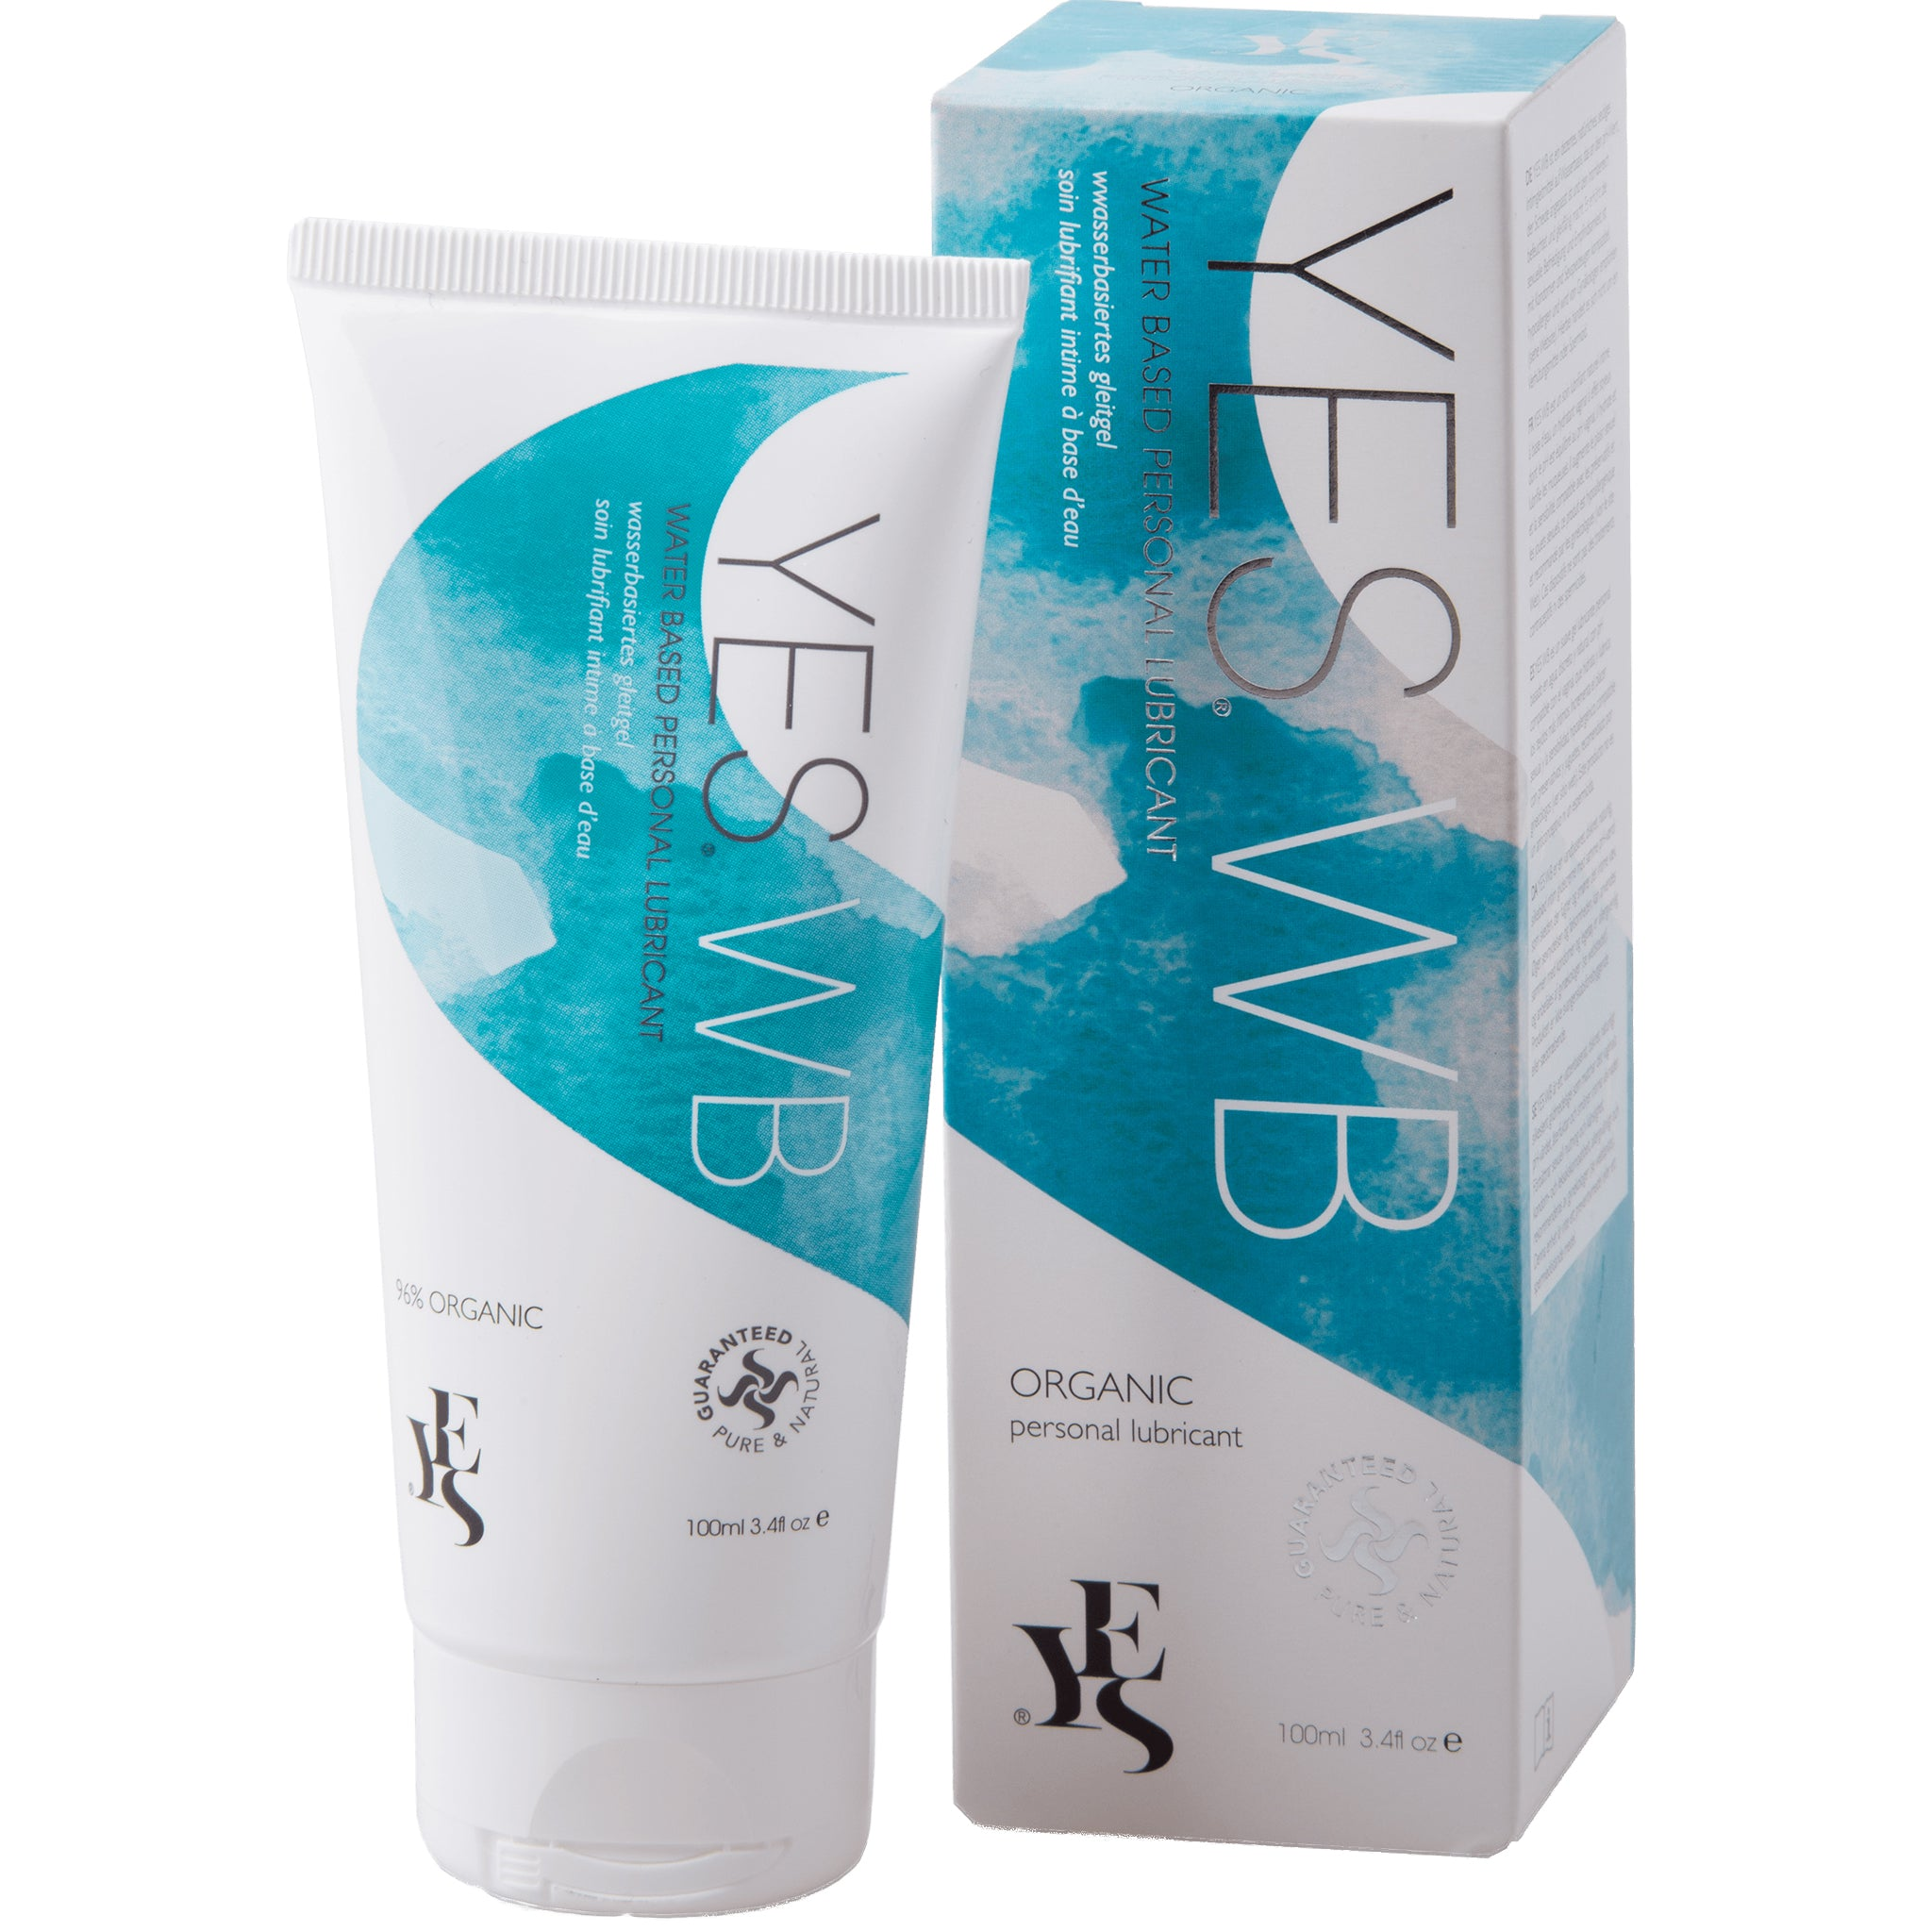 Water-Based Organic Personal Lubricant